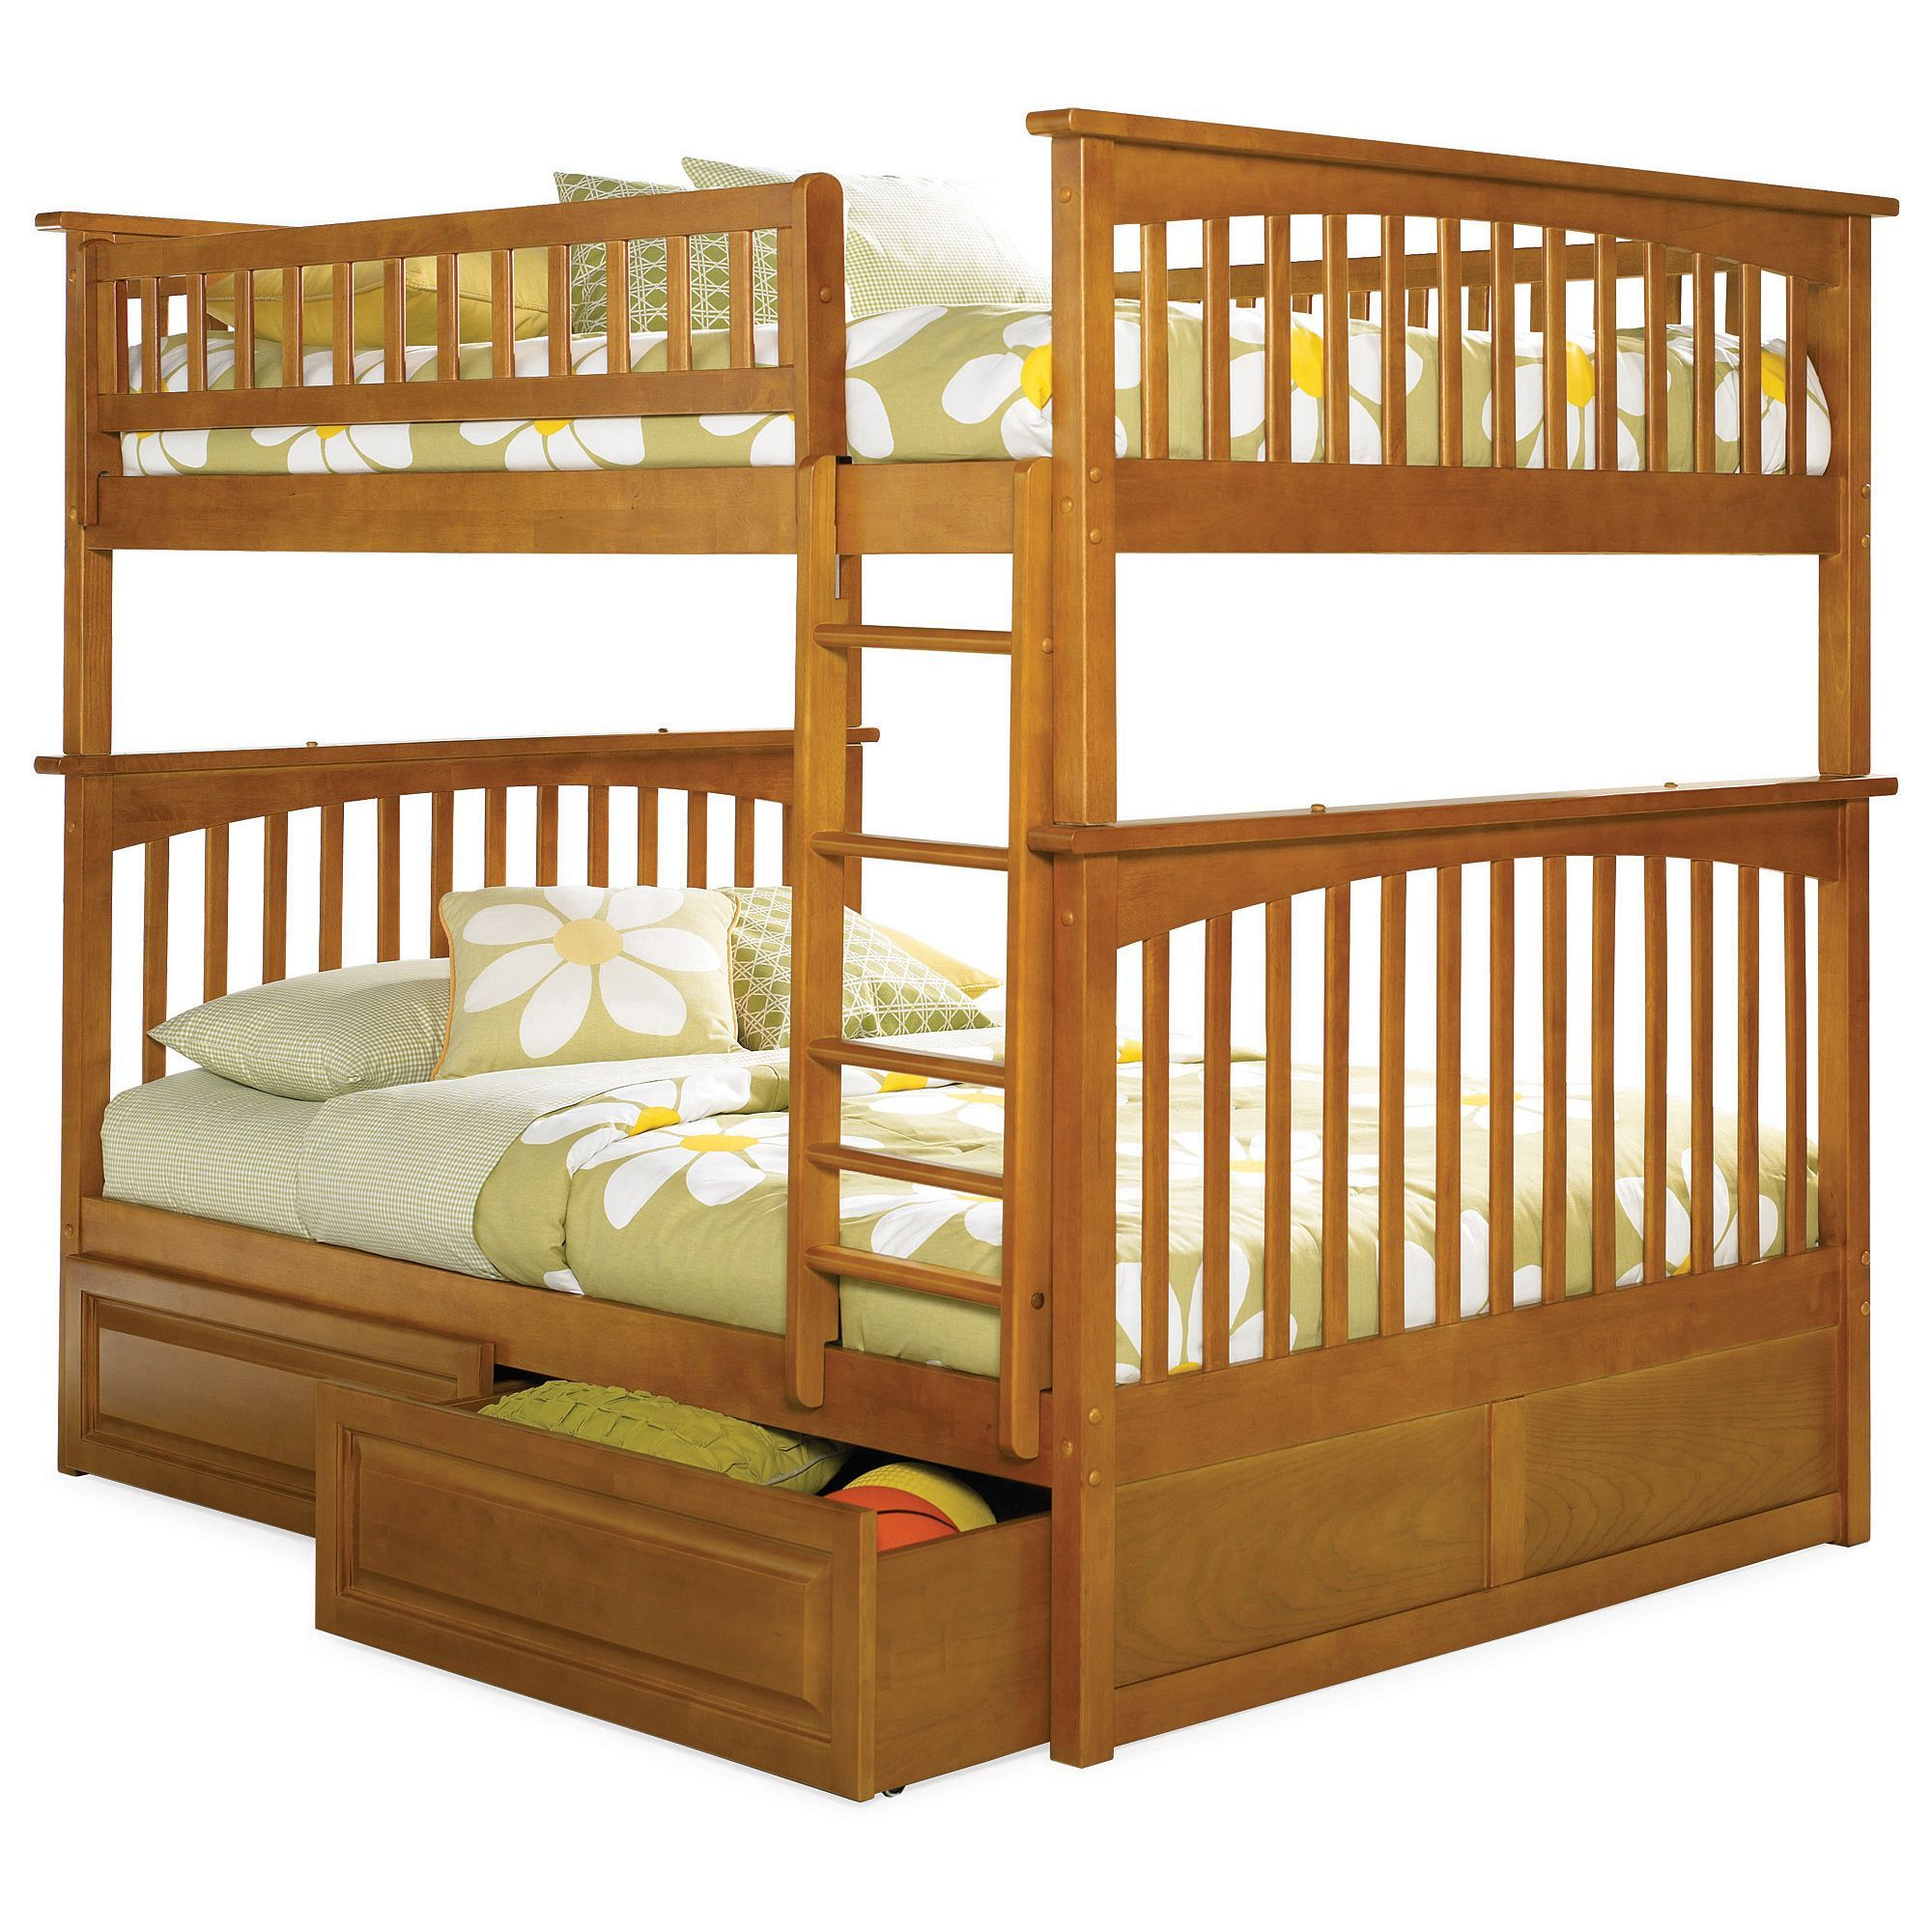 Columbia Bunk Bed Full over Full with Raised Panel Bed